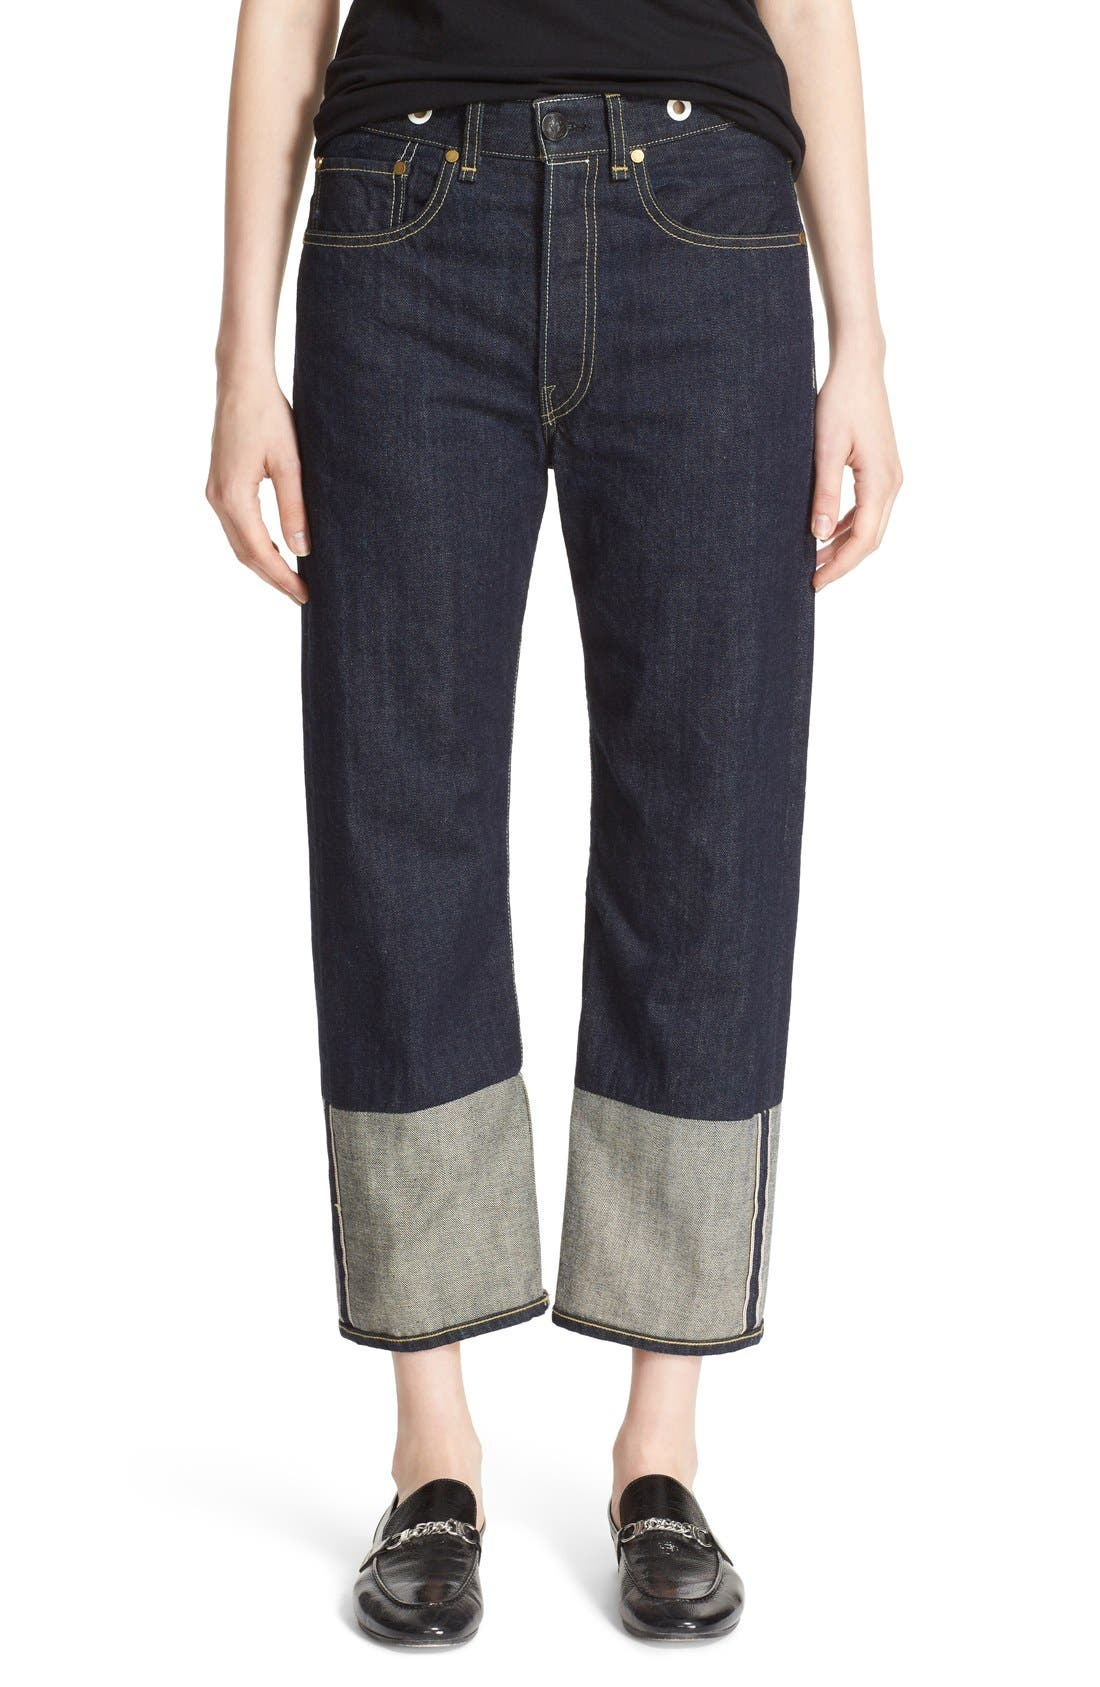 RBW16 High Rise Crop Jeans,                             Main thumbnail 1, color,                             470